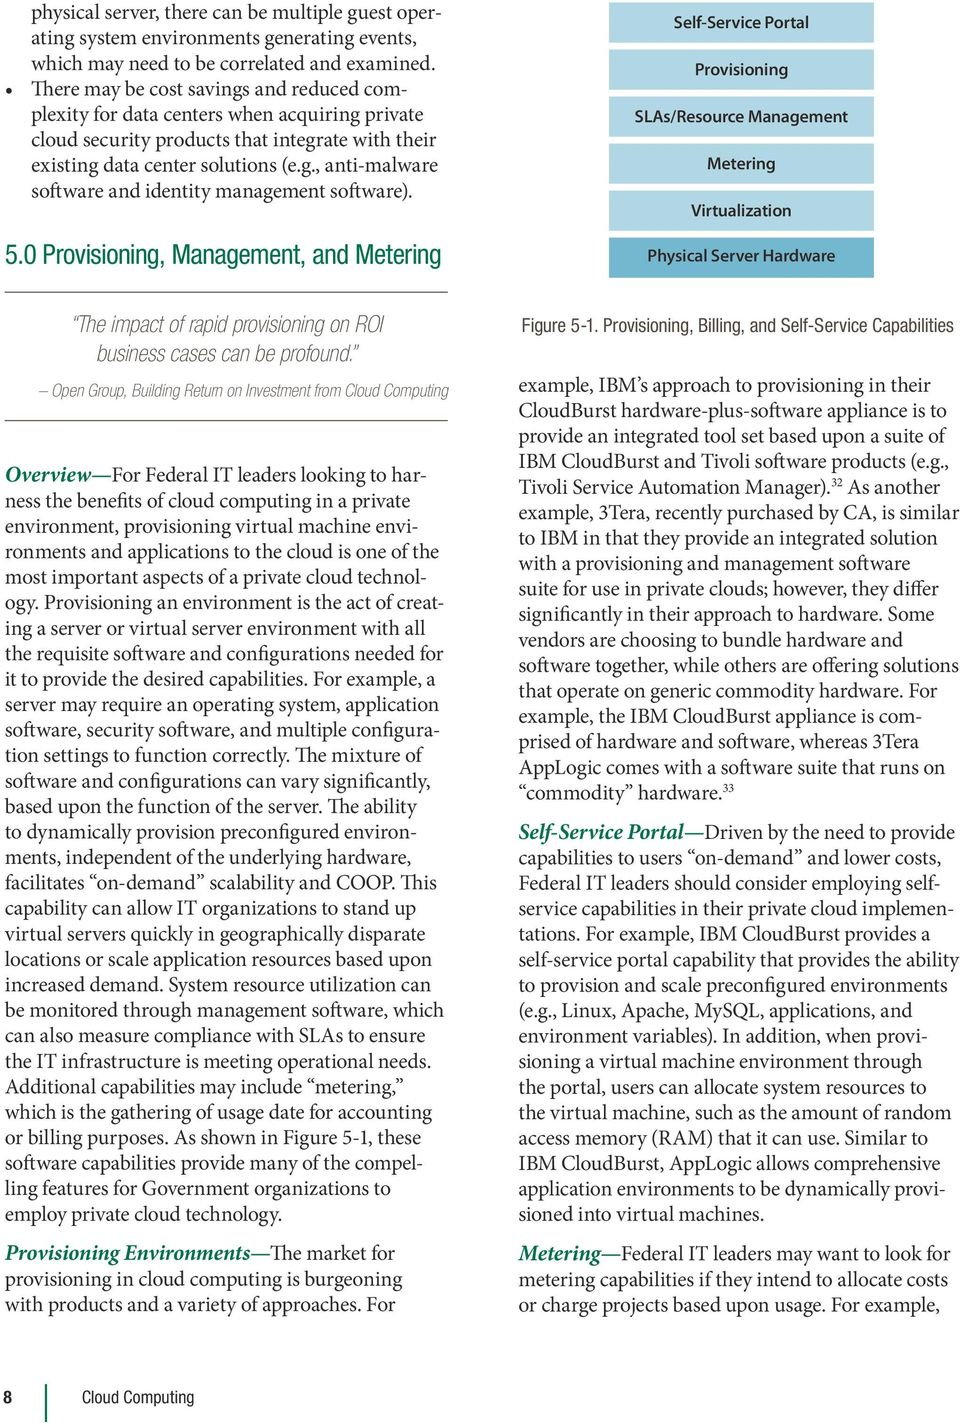 5.0 Provisioning, Management, and Metering Self-Service Portal Provisioning SLAs/Resource Management Metering Virtualization Physical Server Hardware The impact of rapid provisioning on ROI business